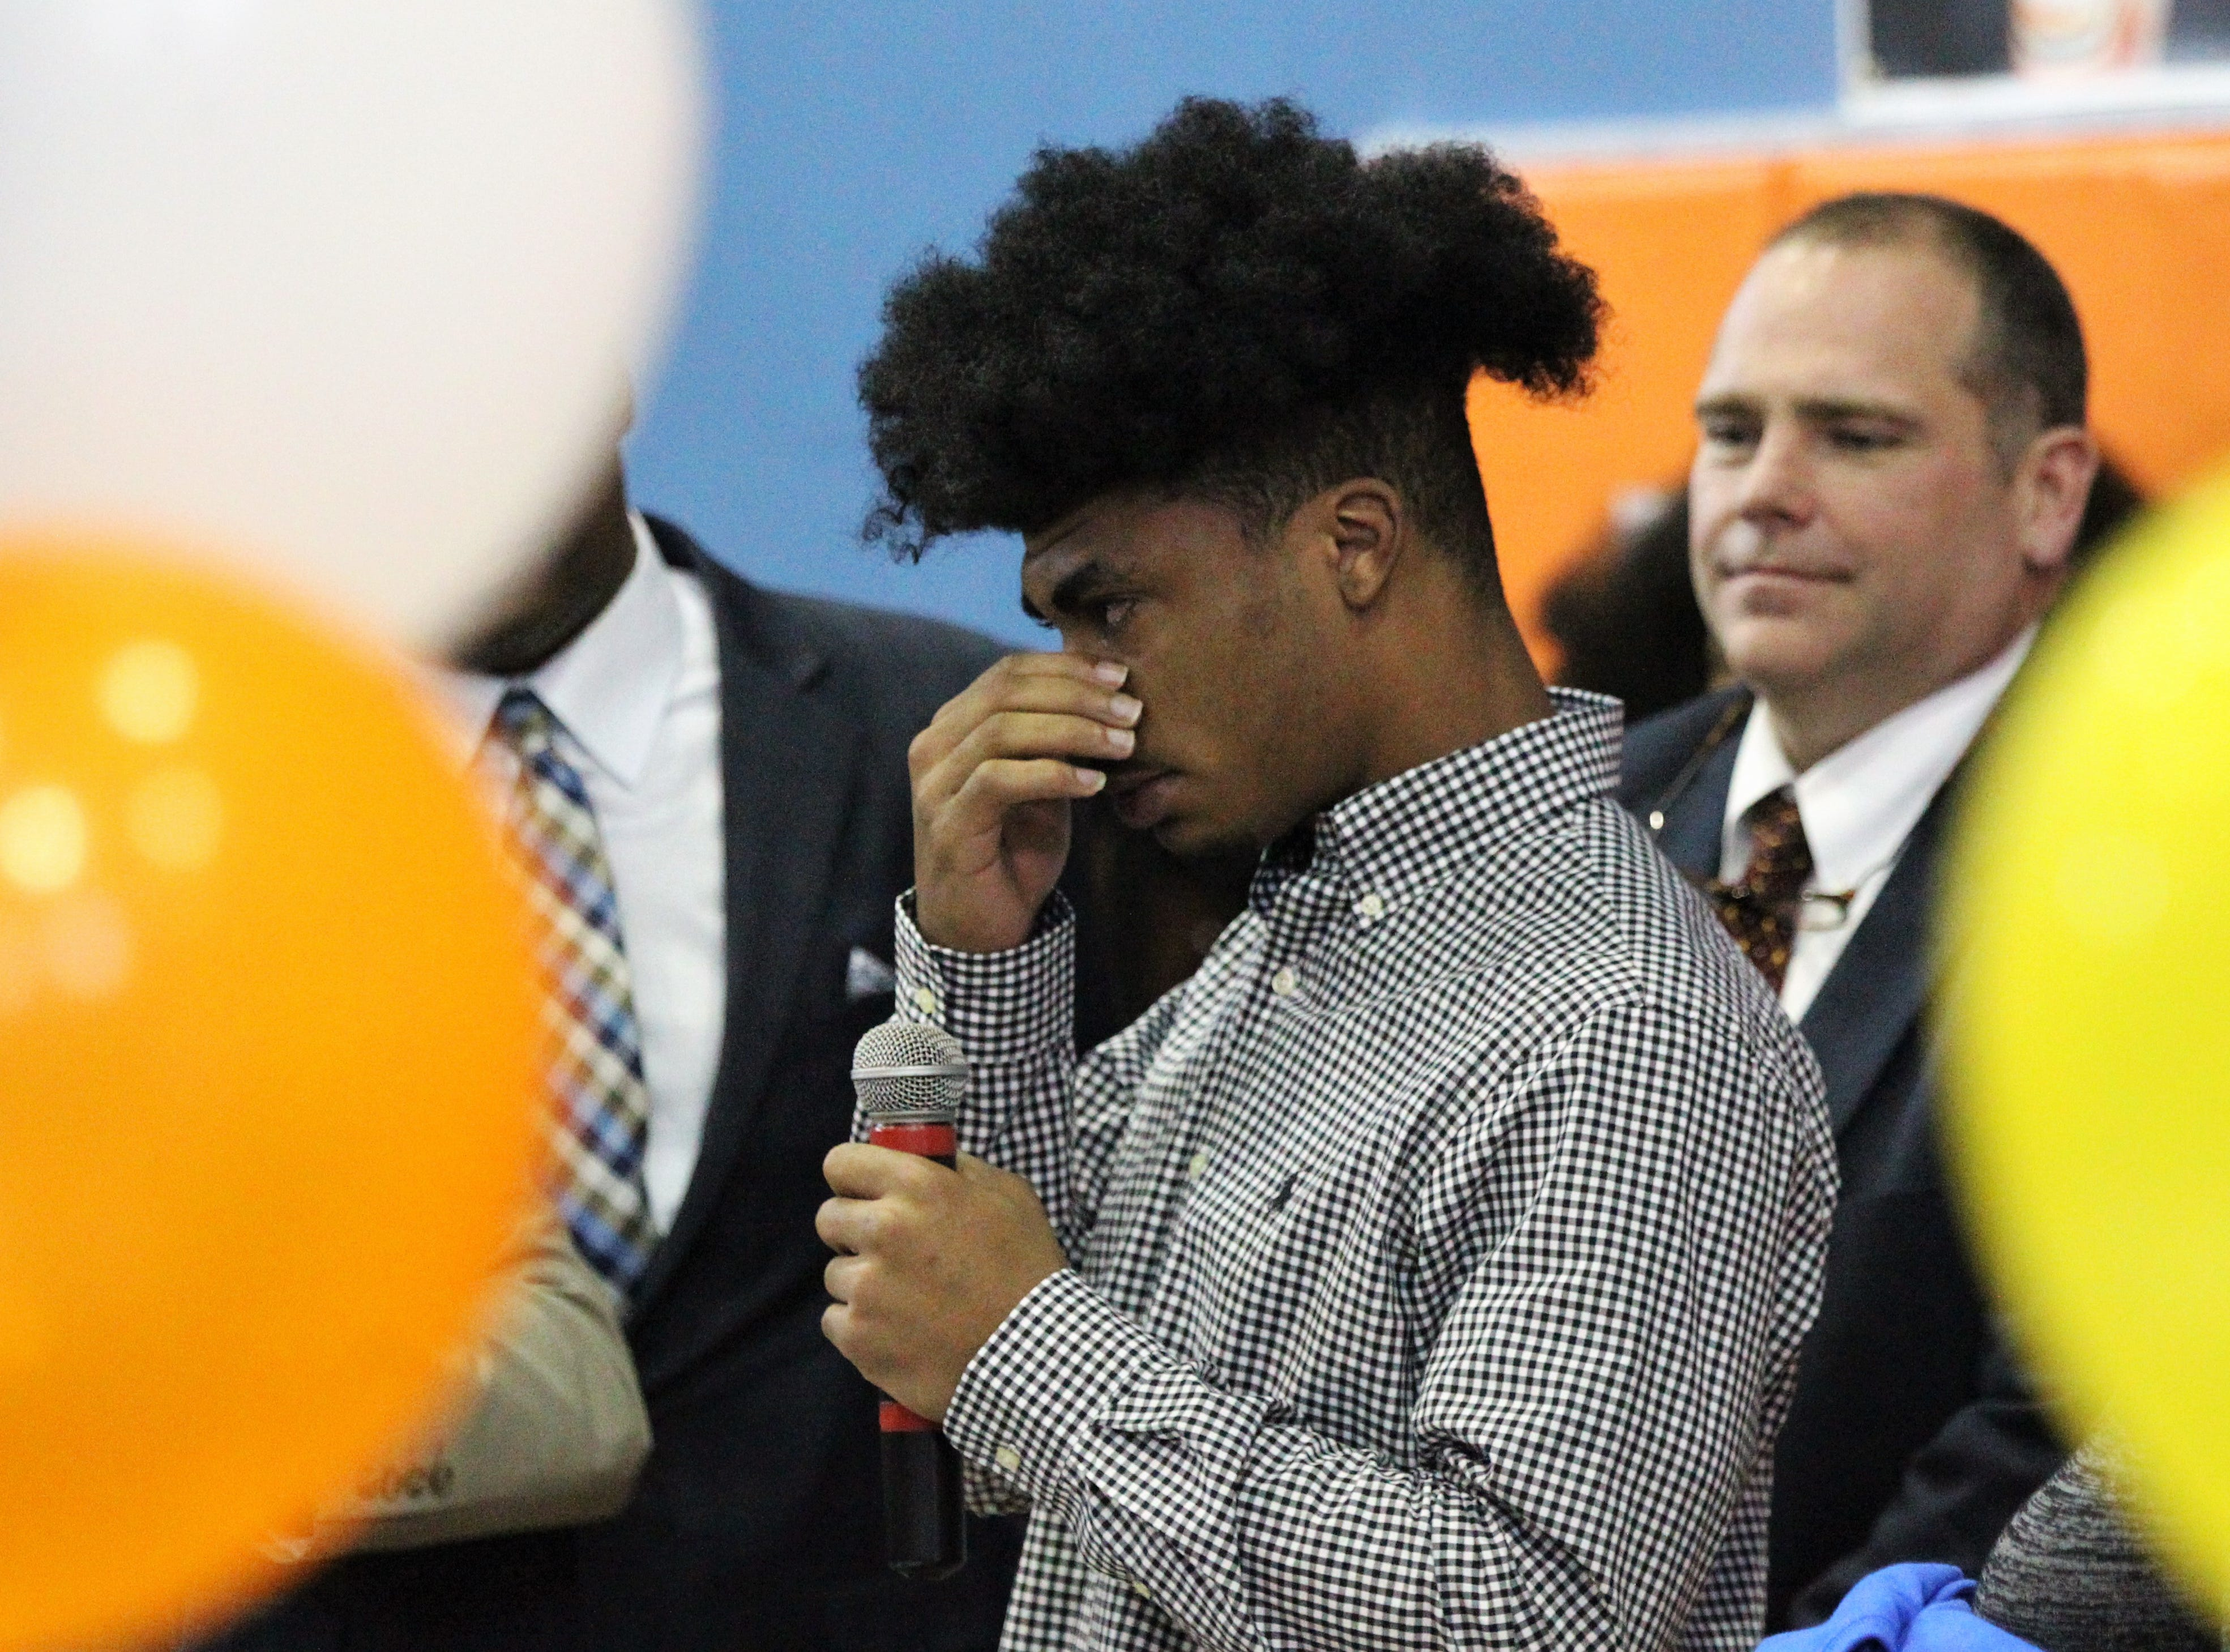 Jefferson County receiver Armon Williams gets emotional talking about a time spent in jail for a crime and how his coach Leroy Smith, Rev. Greg James, and state attorney Jack Campbell helped him get his life turned around. Williams signed with Fullerton College during Jefferson County's signing day ceremony on Feb. 13, 2019.